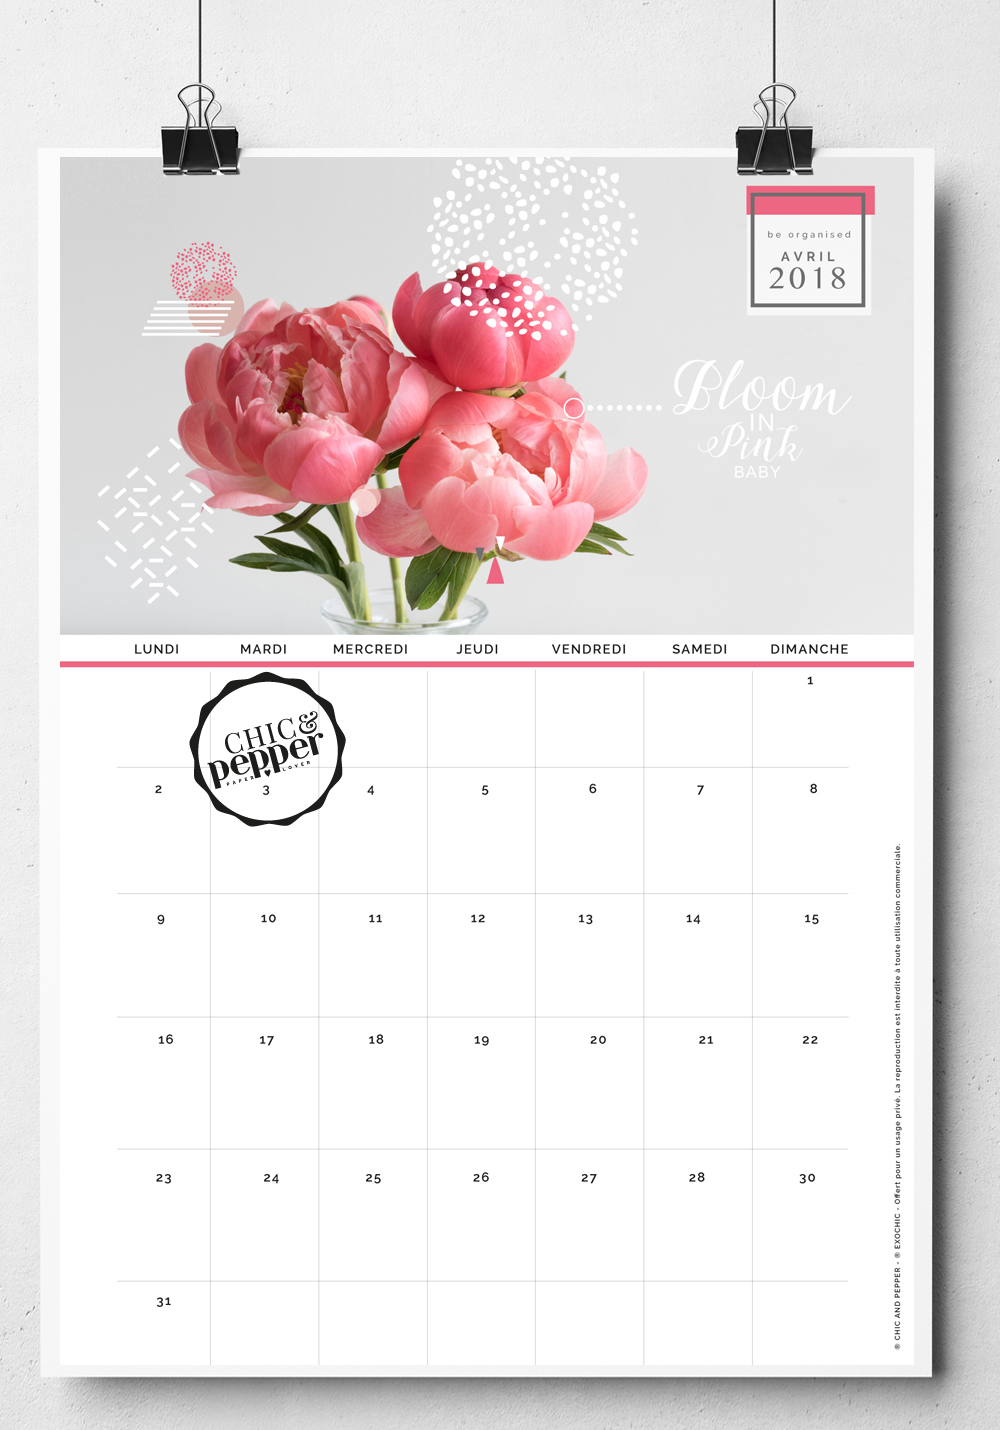 Air Chic Design:disque externe:EXOChic:1 -POSTS:1 - ARTICLES:2018:04- AVRIL:01 CALENDRIER AVRIL 2018:IMAGE BLOG:fond ecran Calendrier AVRIL EXOCHIC- CHIC AND PEPPER 2.jpg